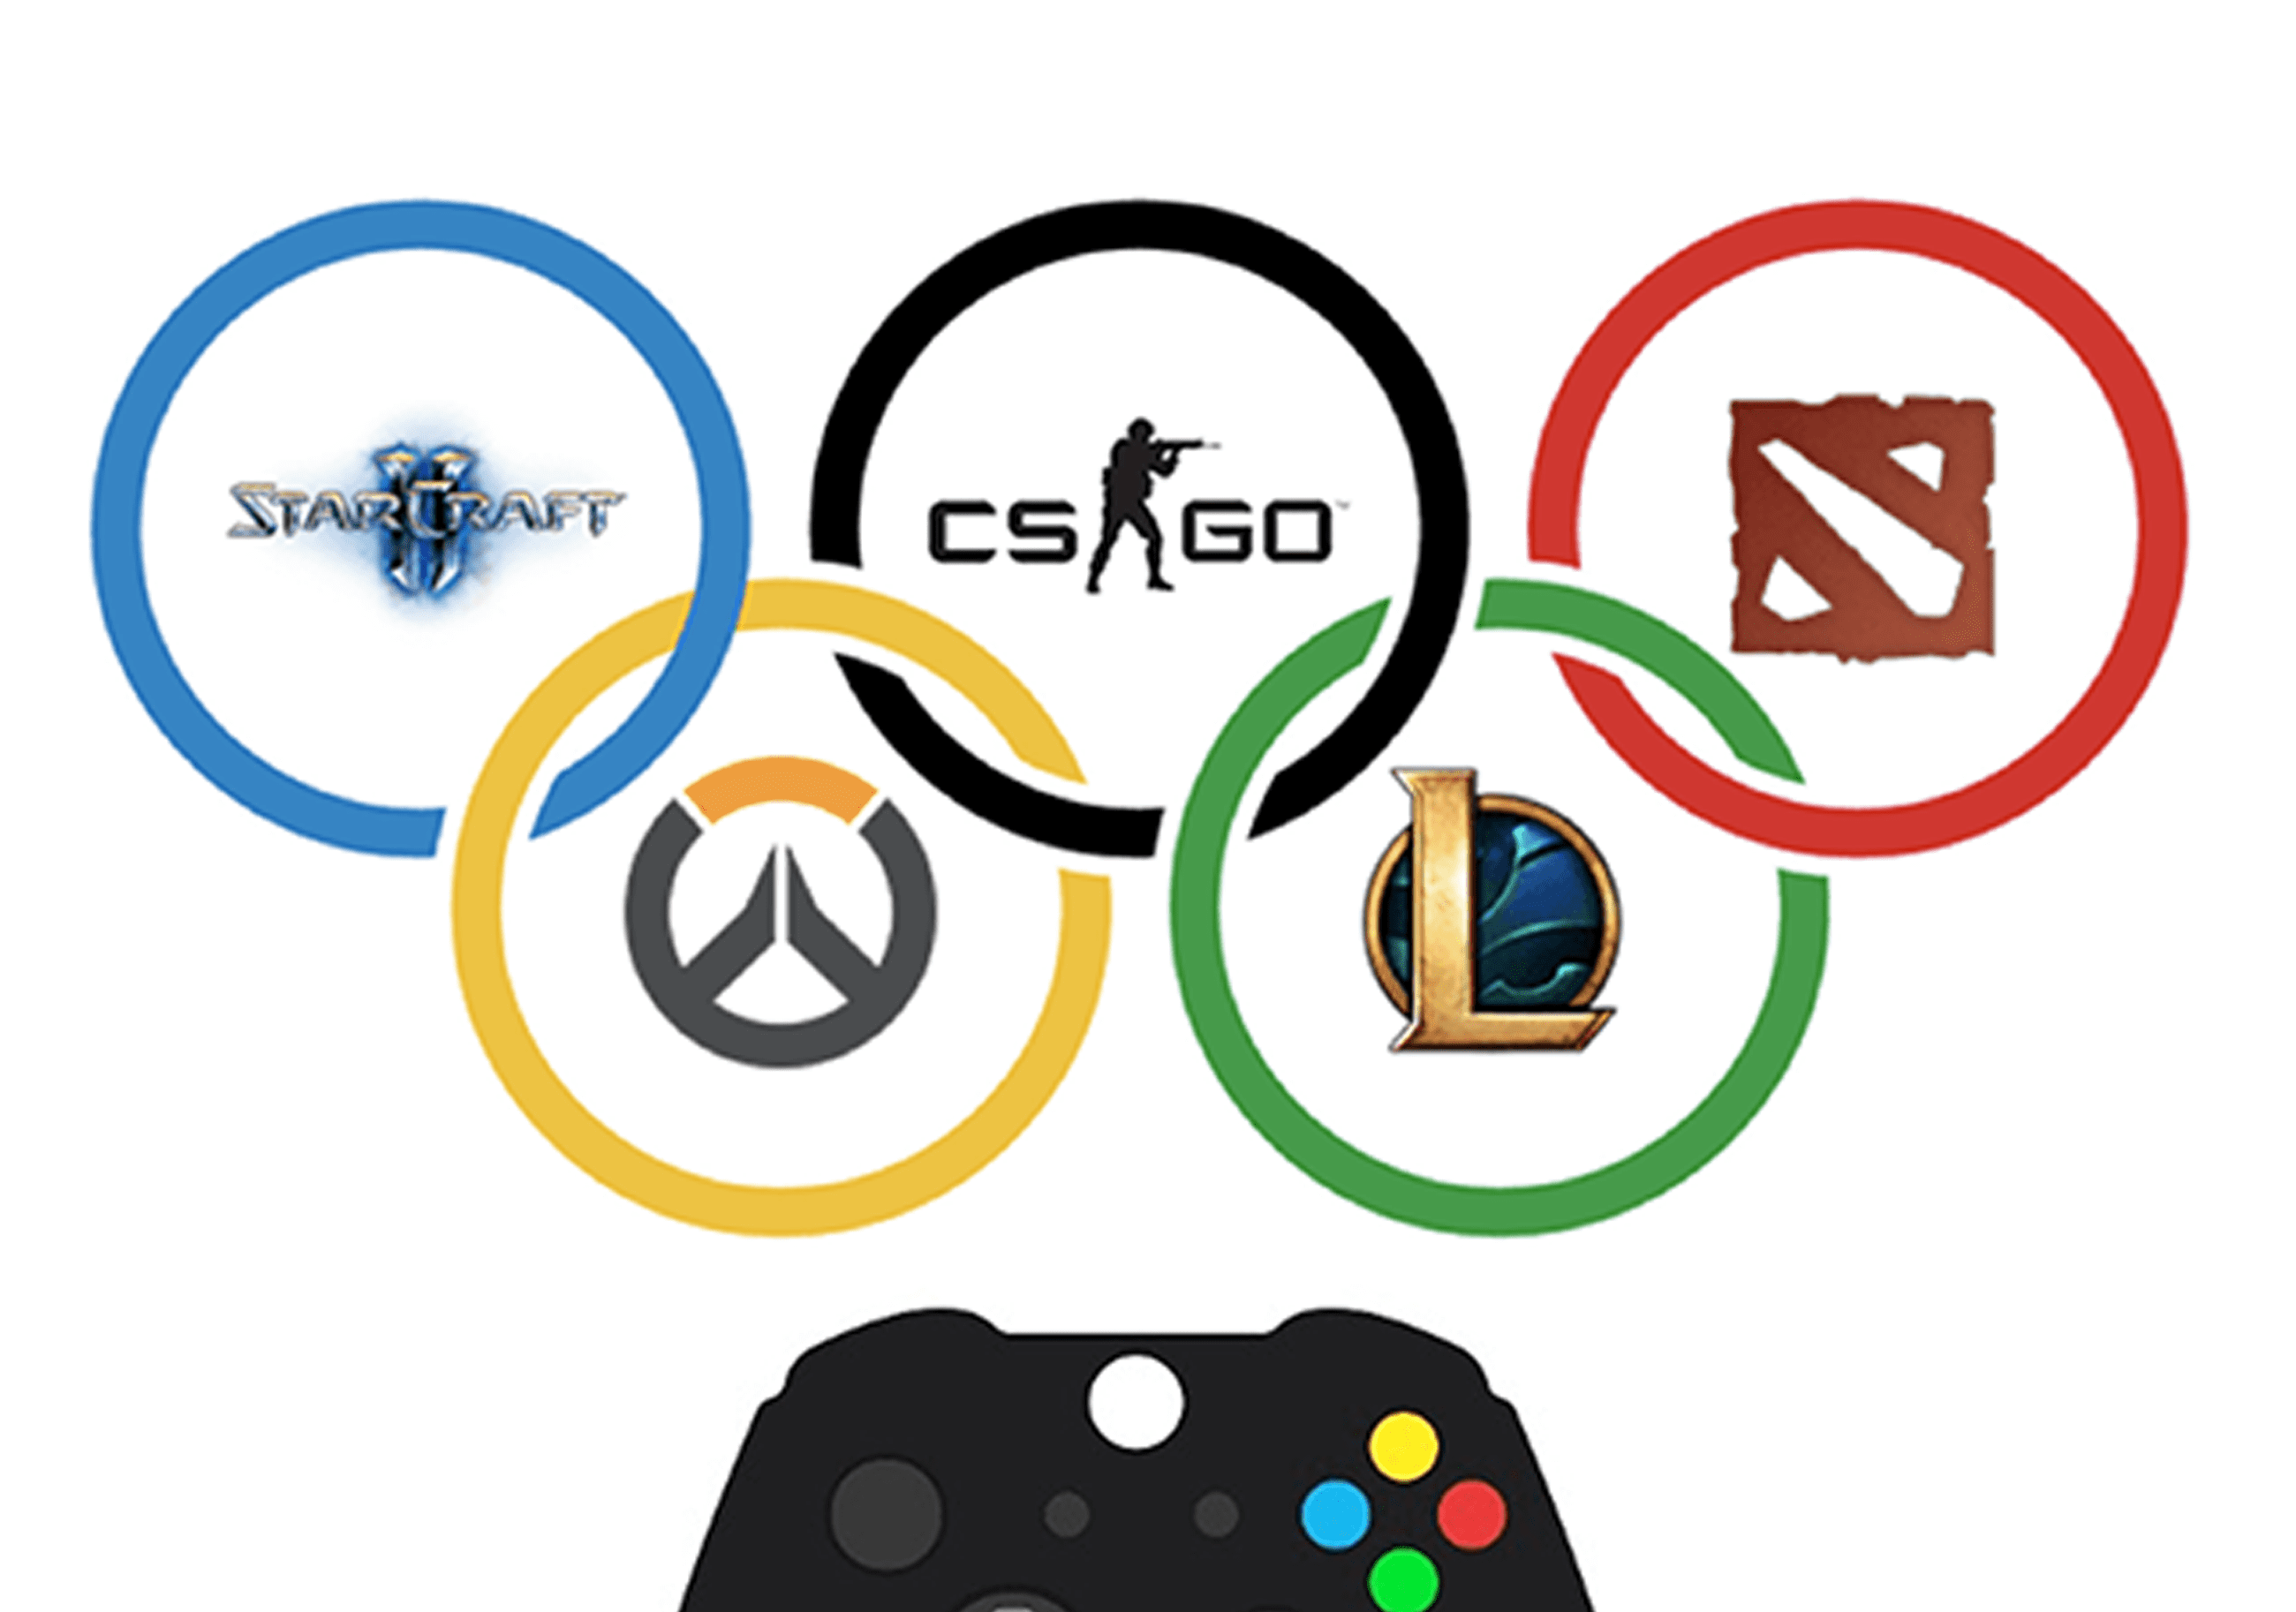 Olympic rings with esports games in the middle and controller at the bottom